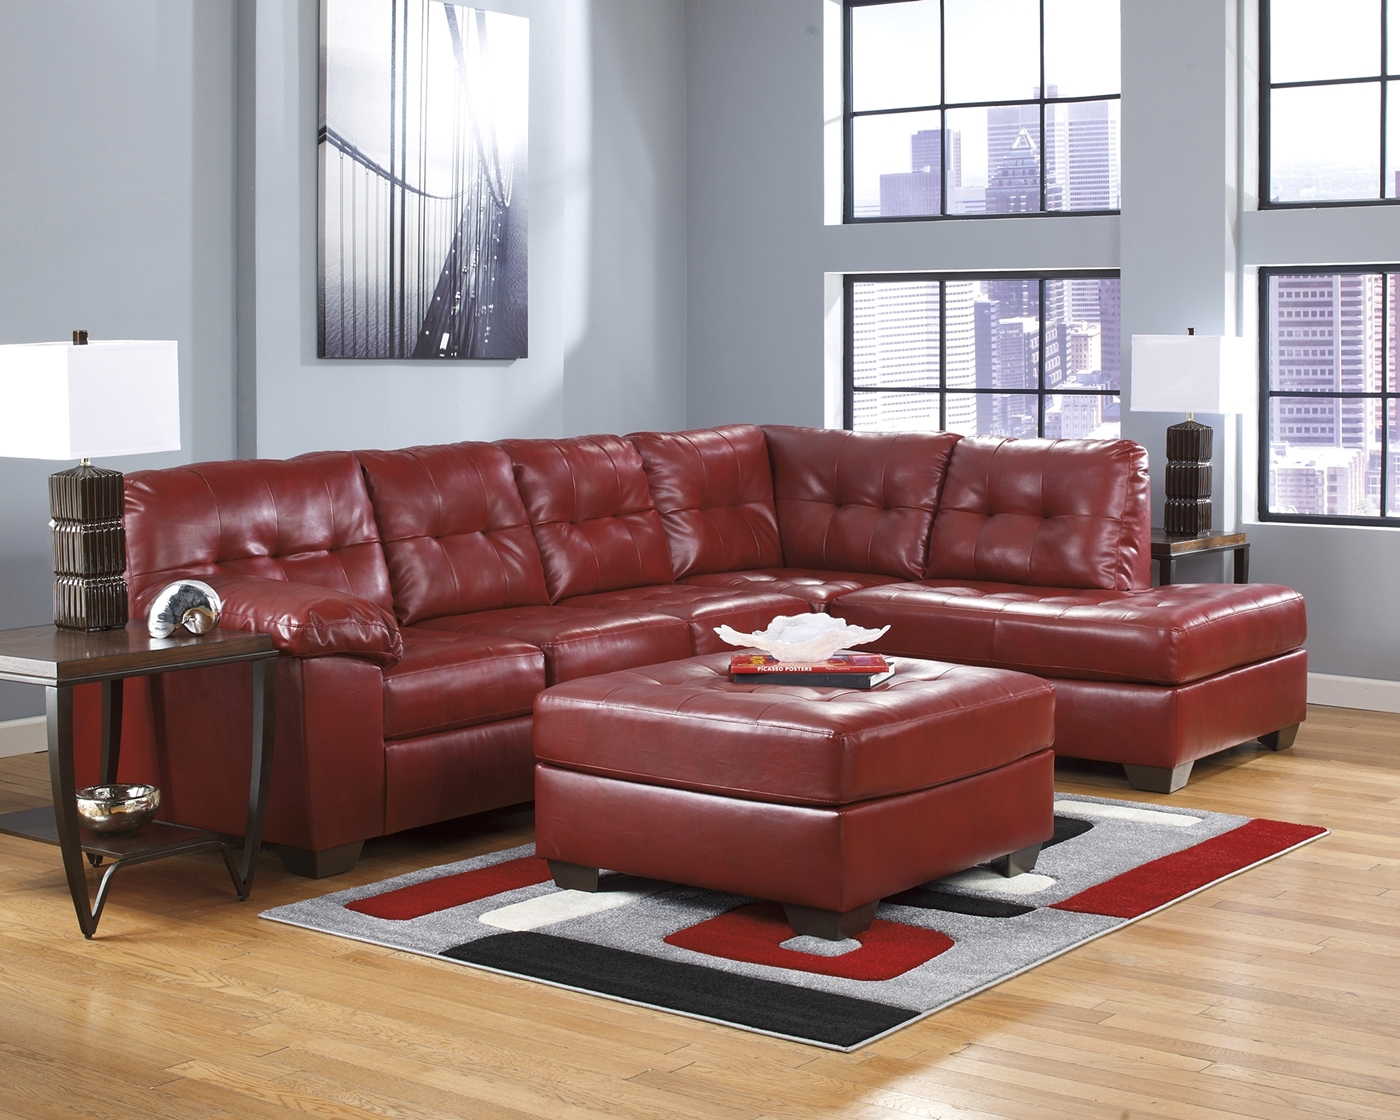 ashley red leather sofa crate and barrel sofas singapore sectional bonded shop factory direct